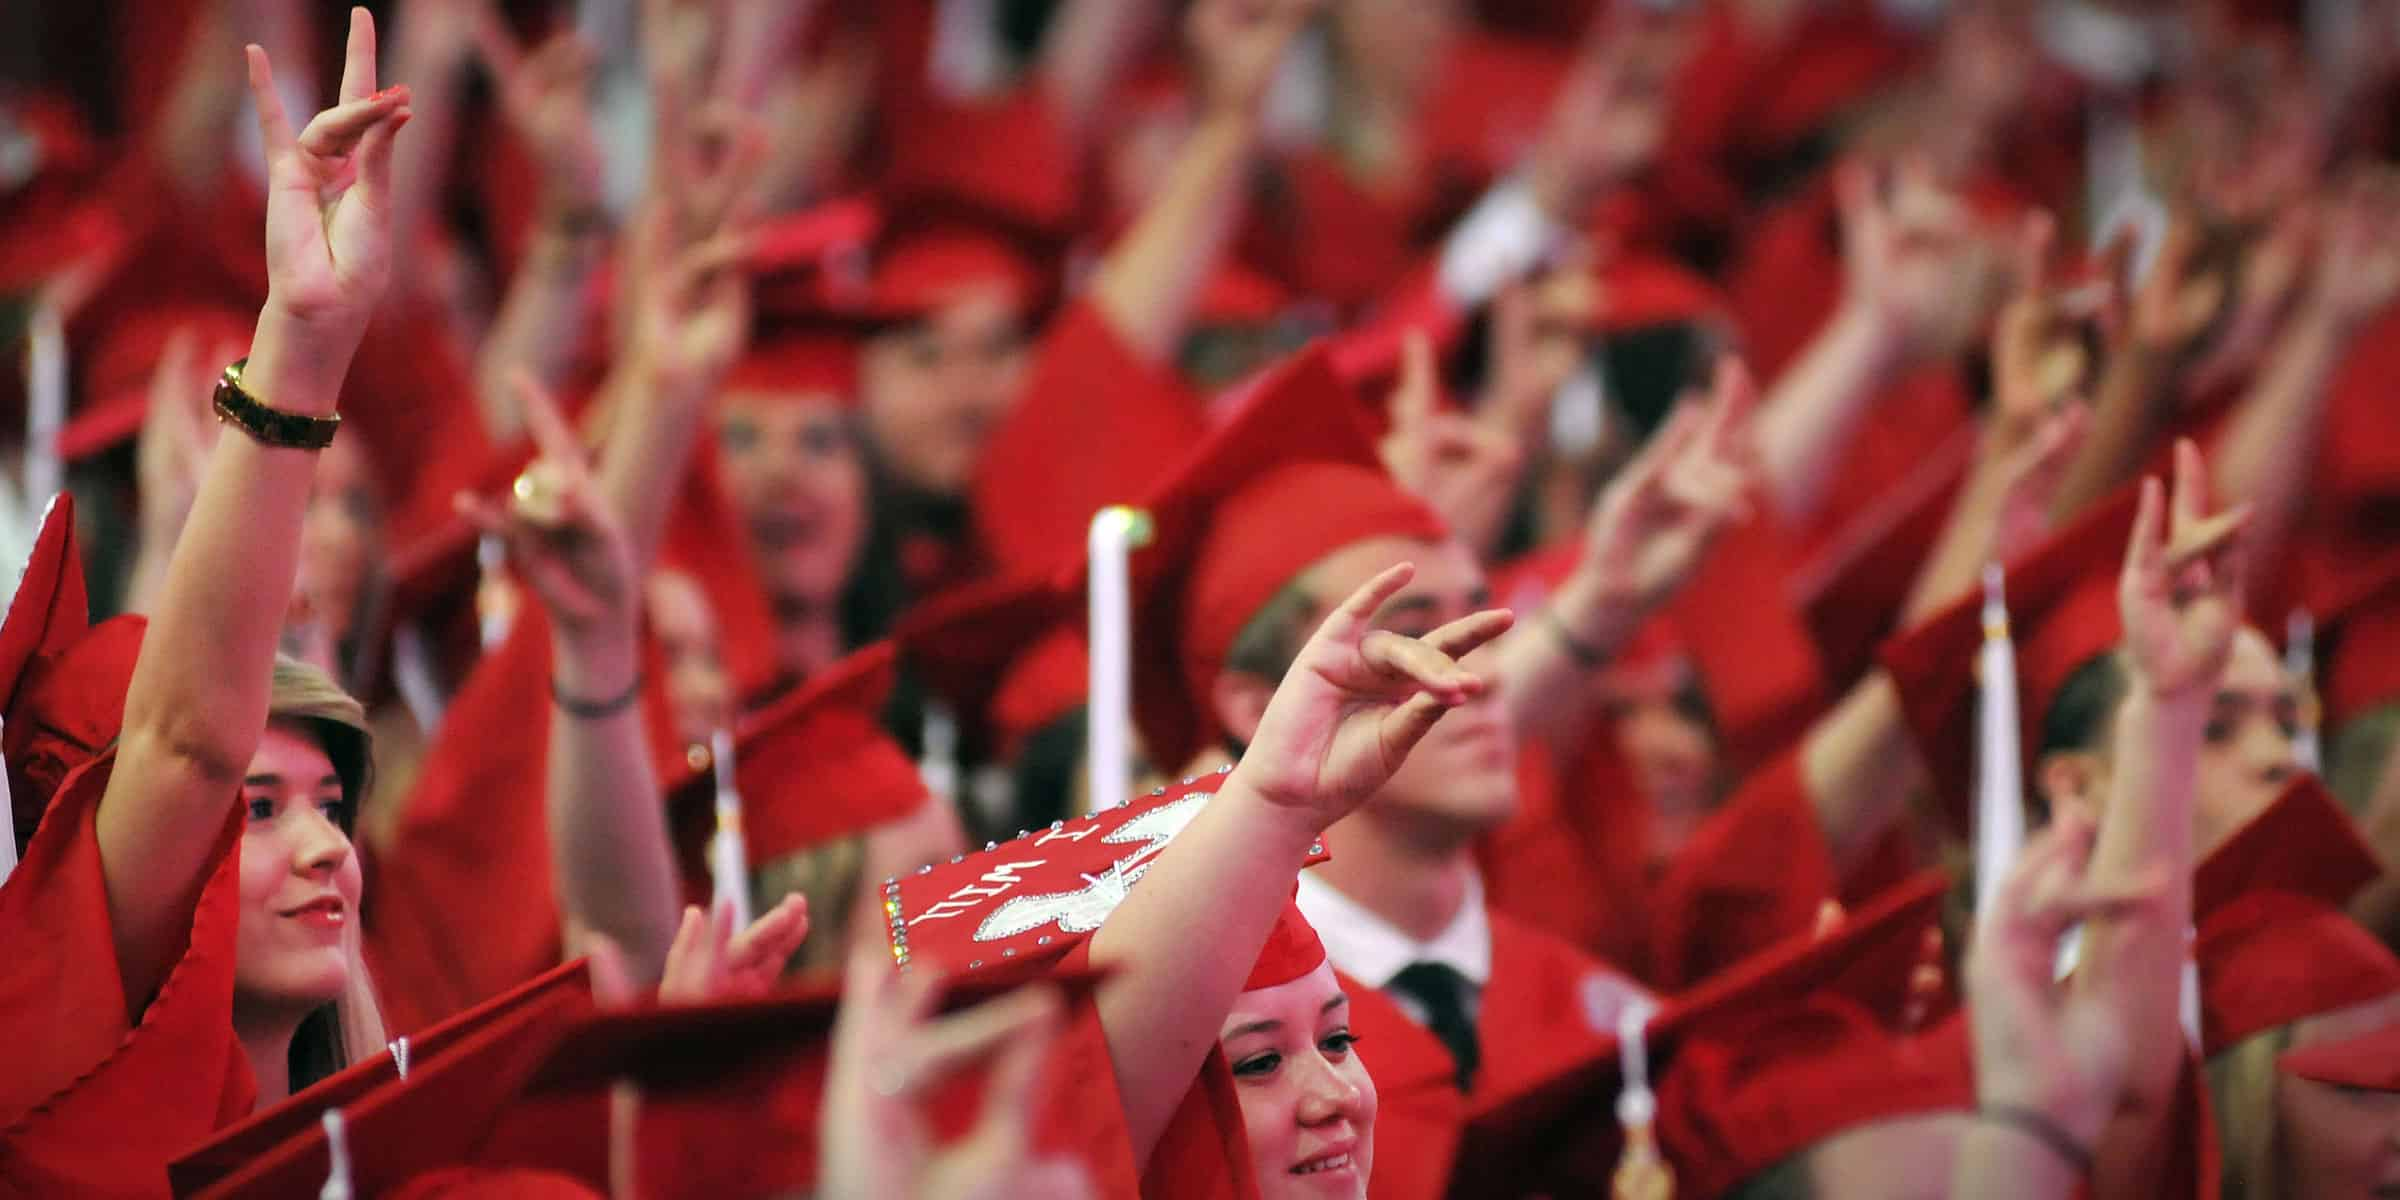 Students hold up wolf hand at graduation ceremony